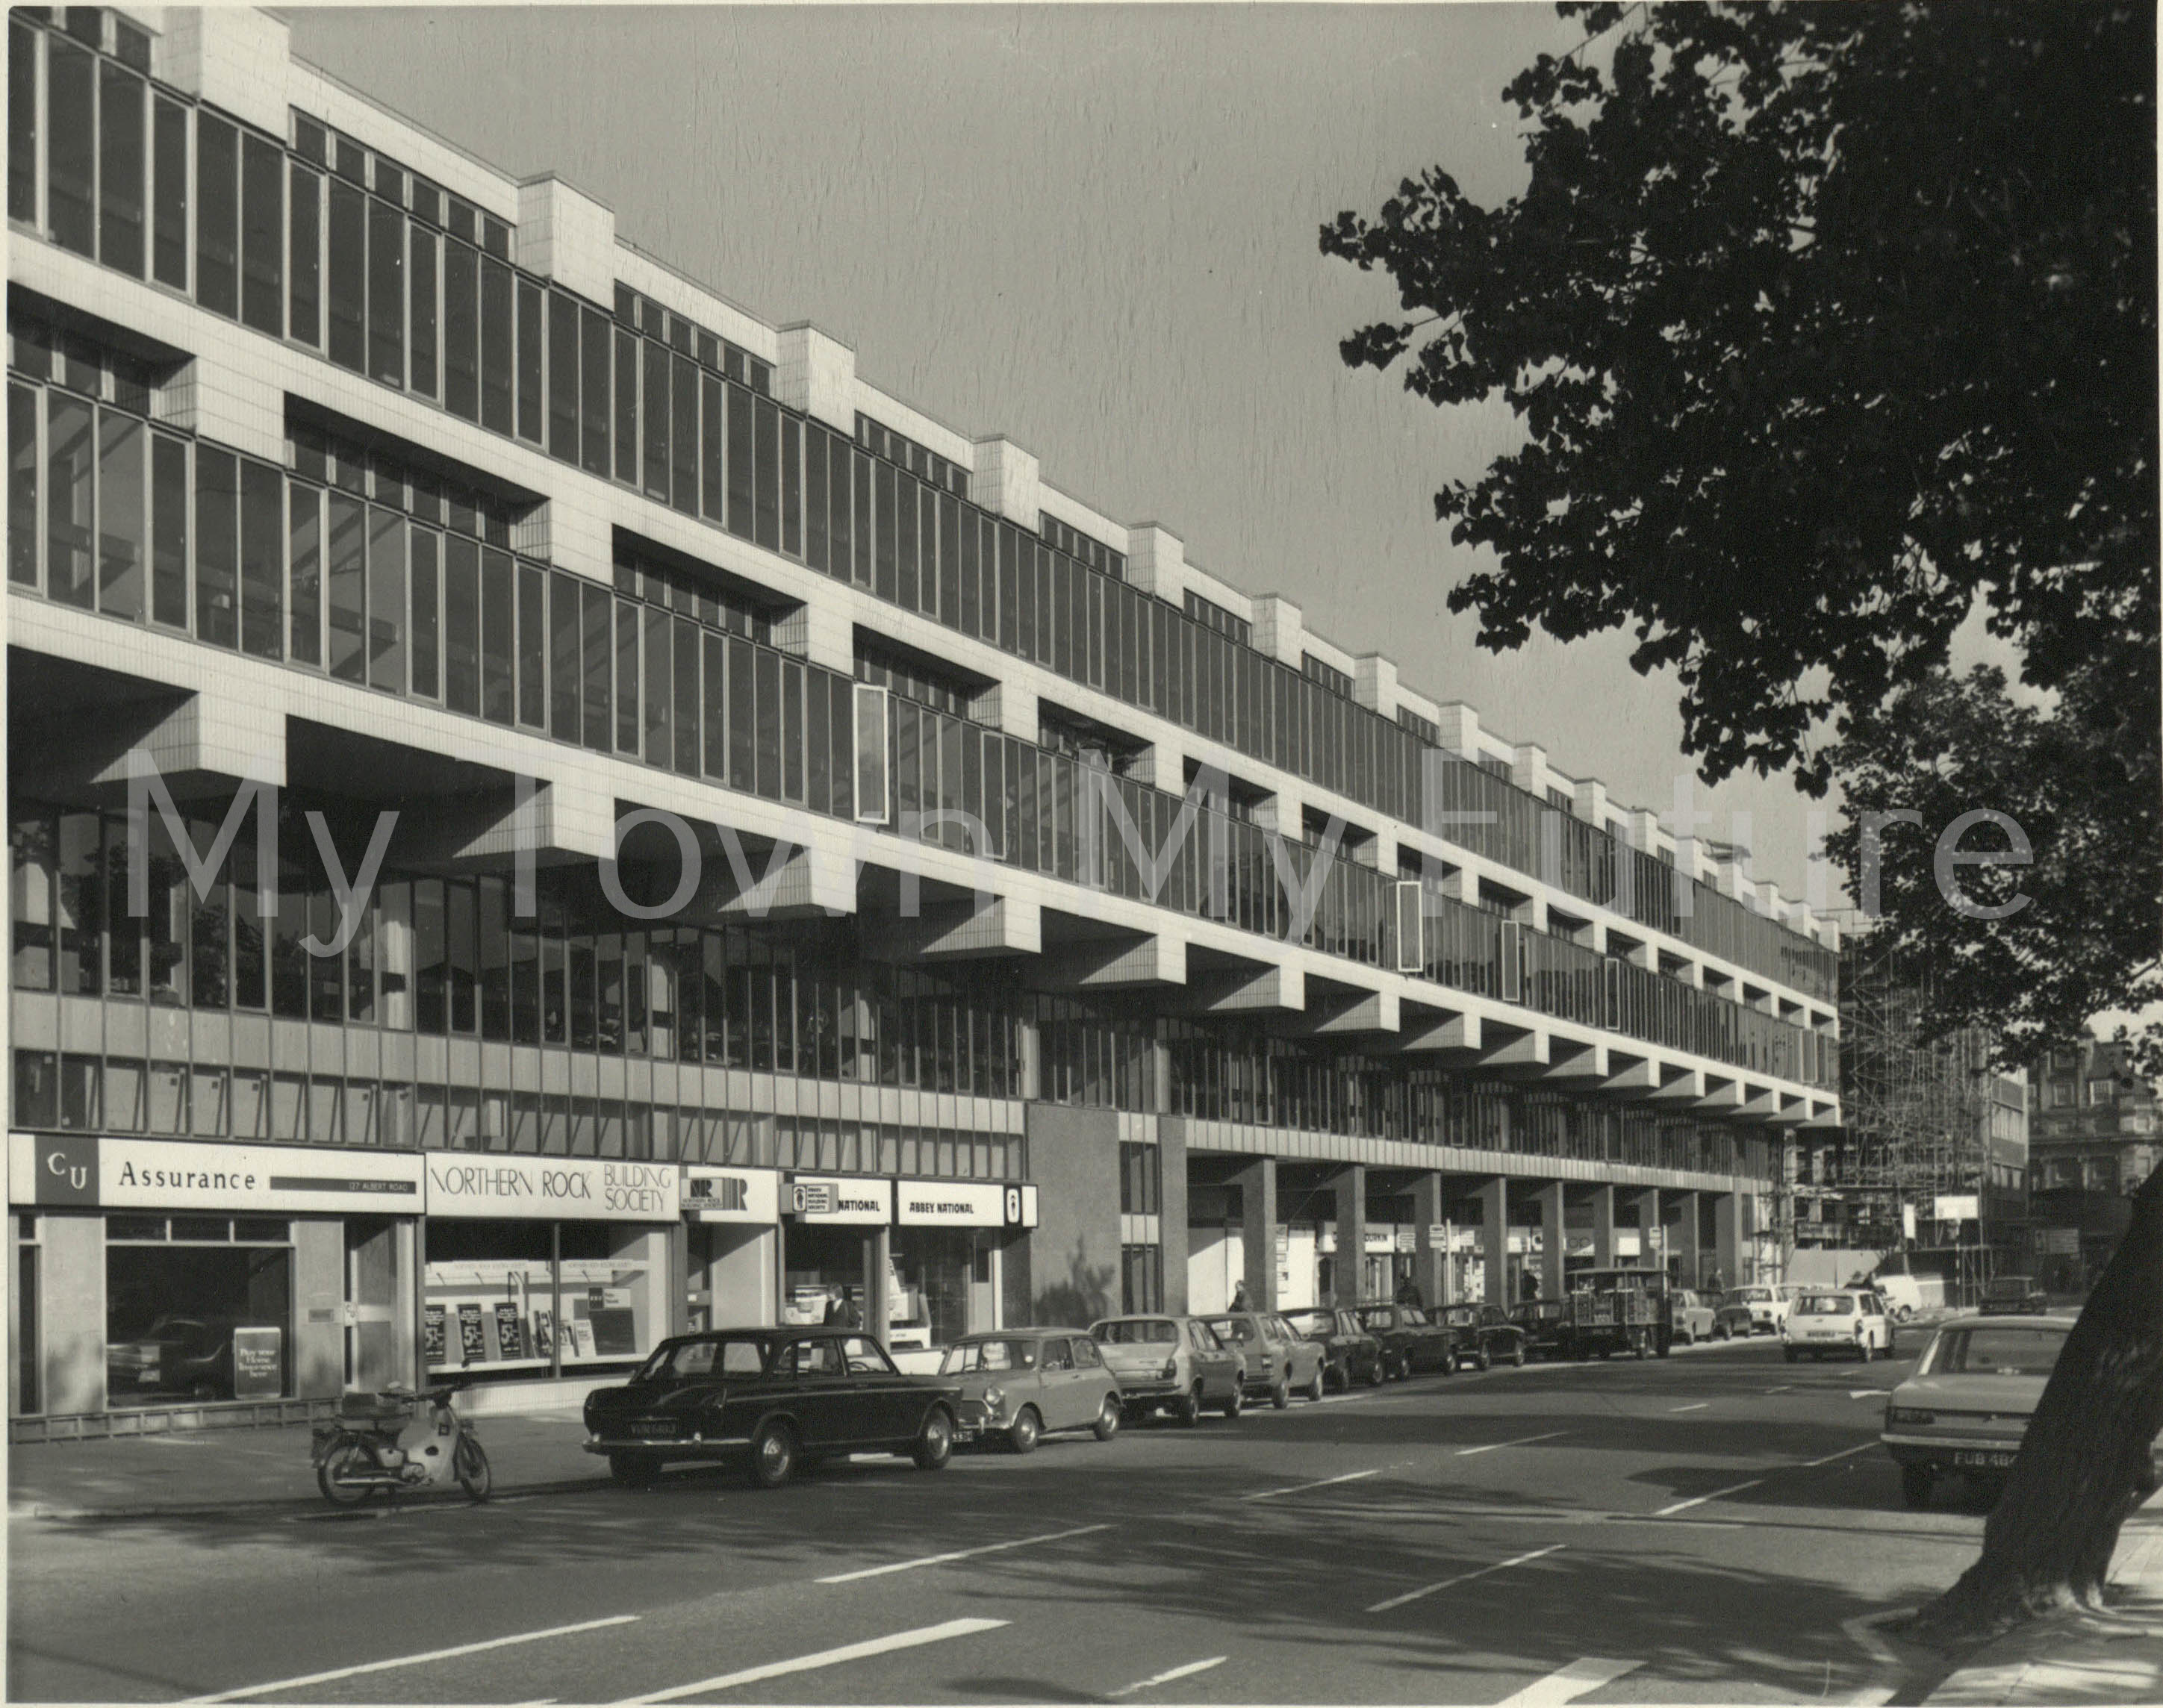 Cleveland Centre - Albert Road side-newly built-opened in stages 1970 - 1971, 1st Store Dean Wycherley's Record Shop opened 12 Aug 1970